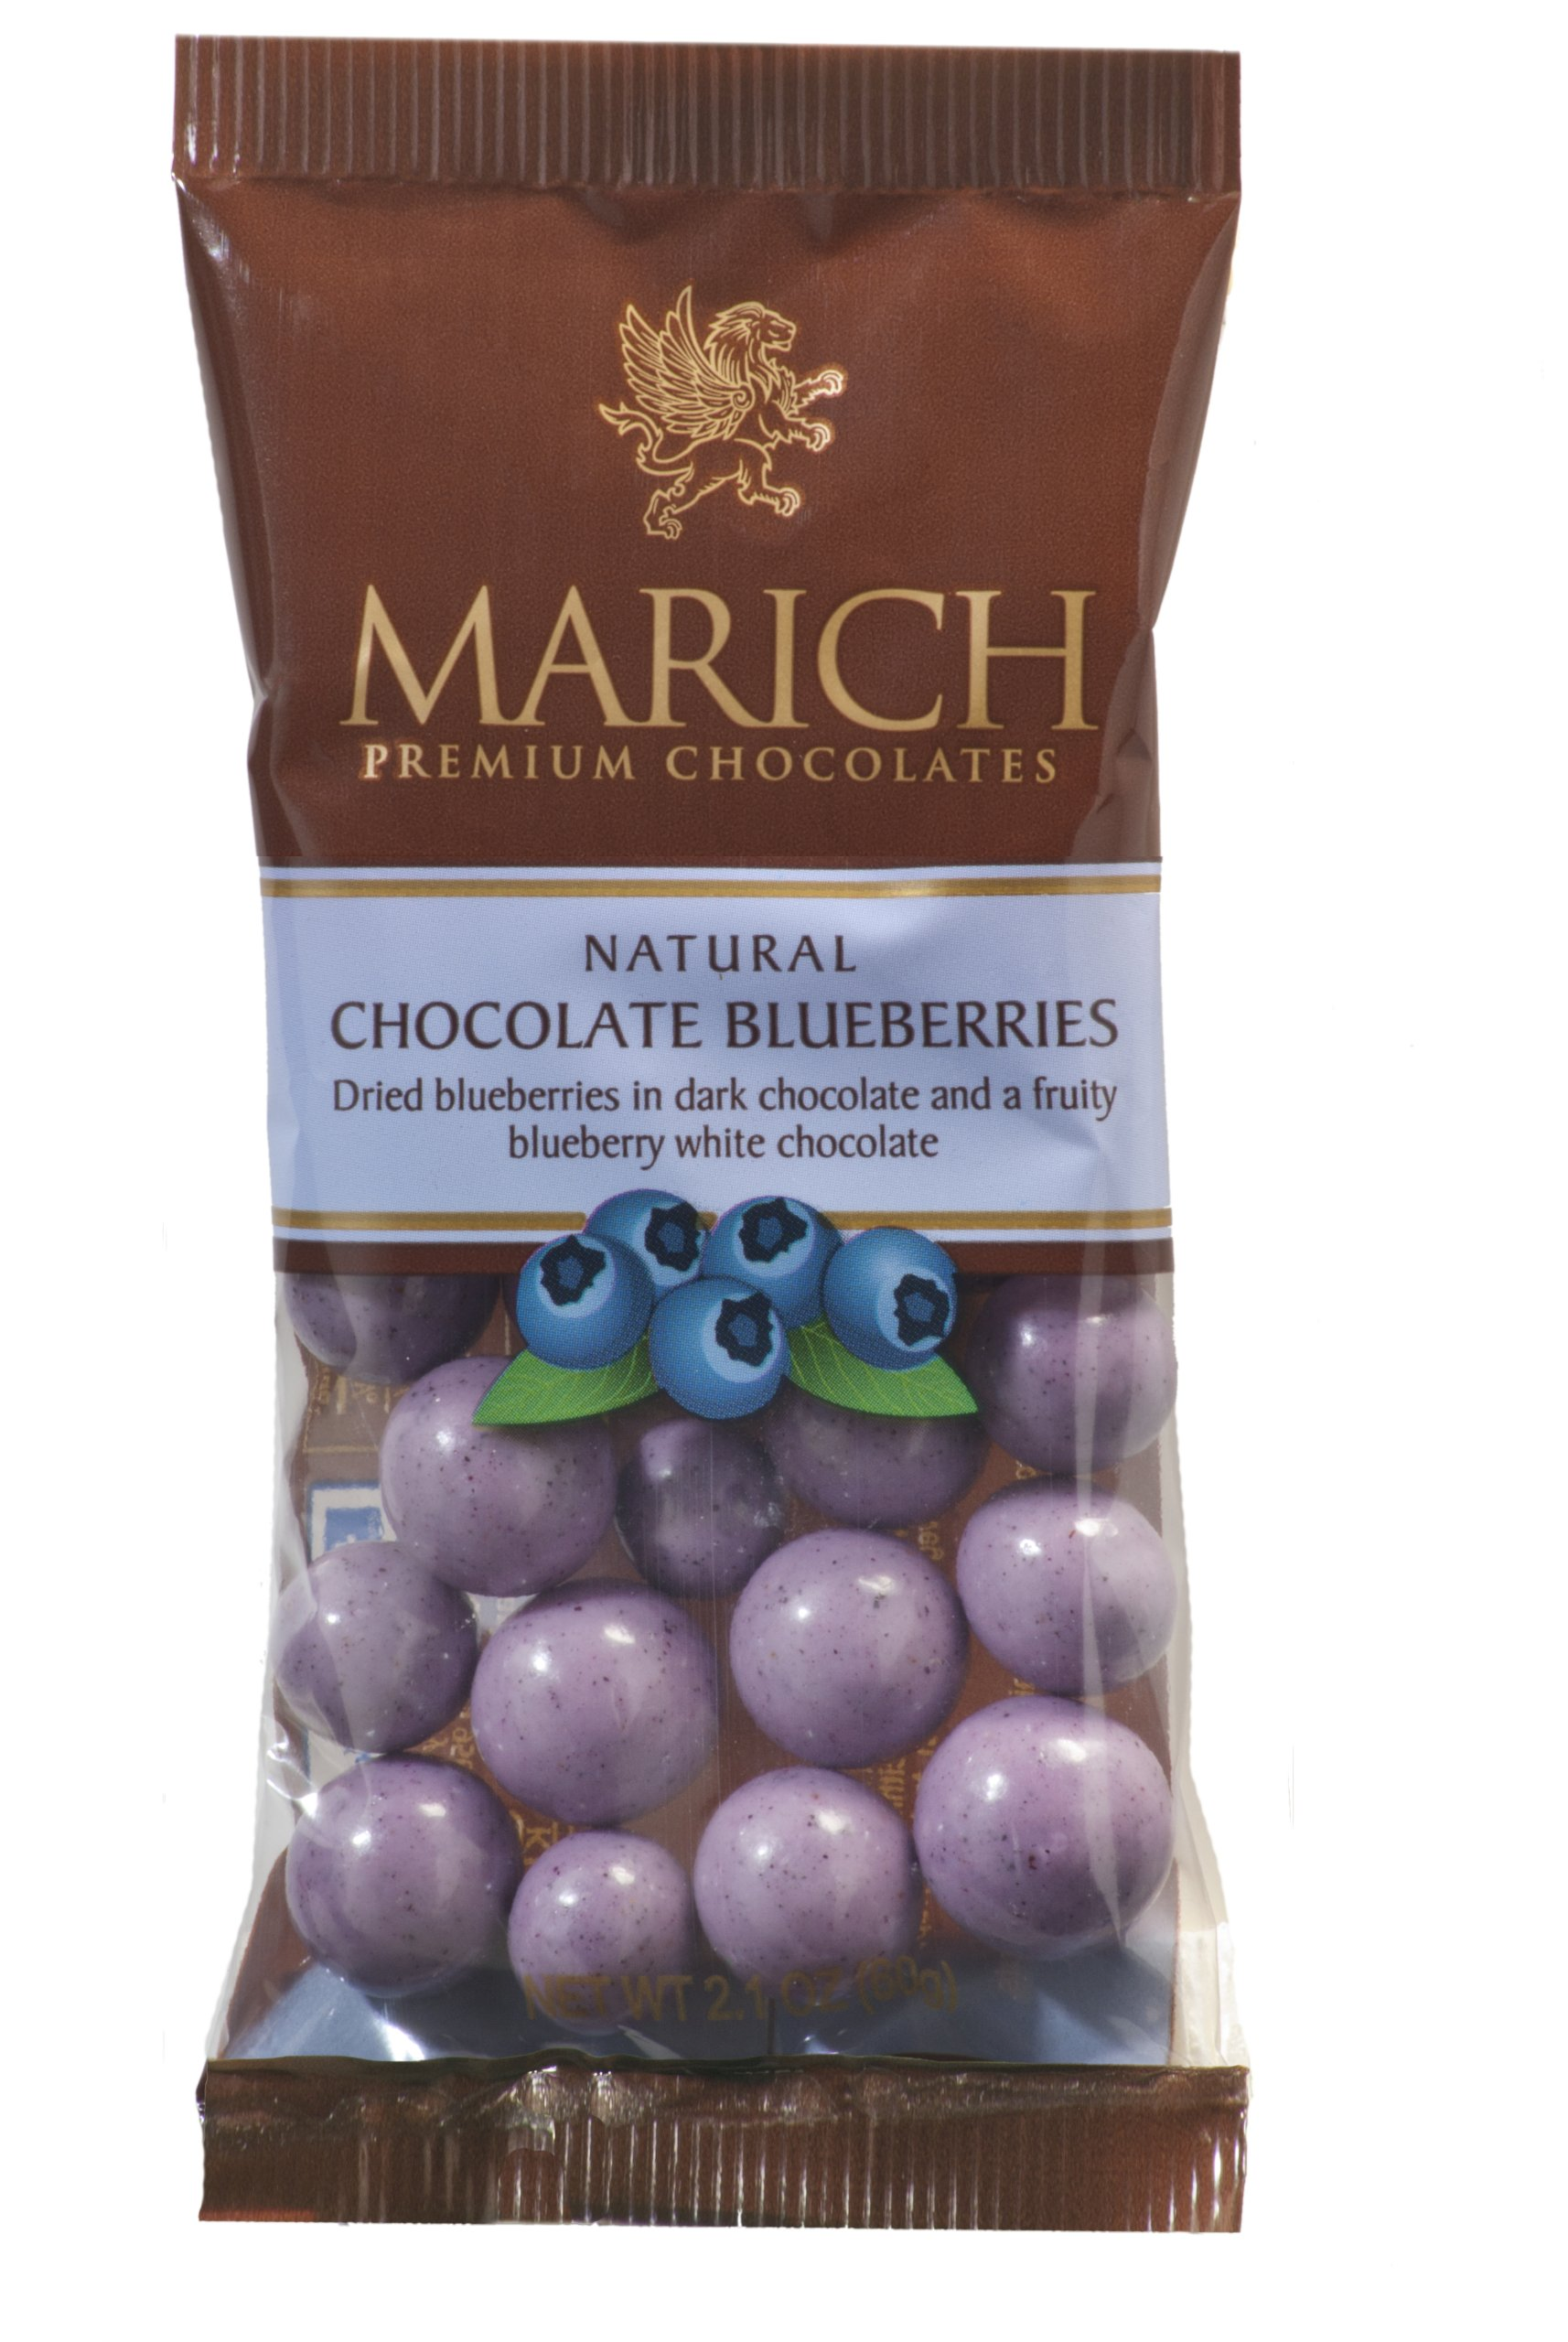 Marich Natural Chocolate Blueberries, 2.1-Ounce (Pack of 12) by Marich